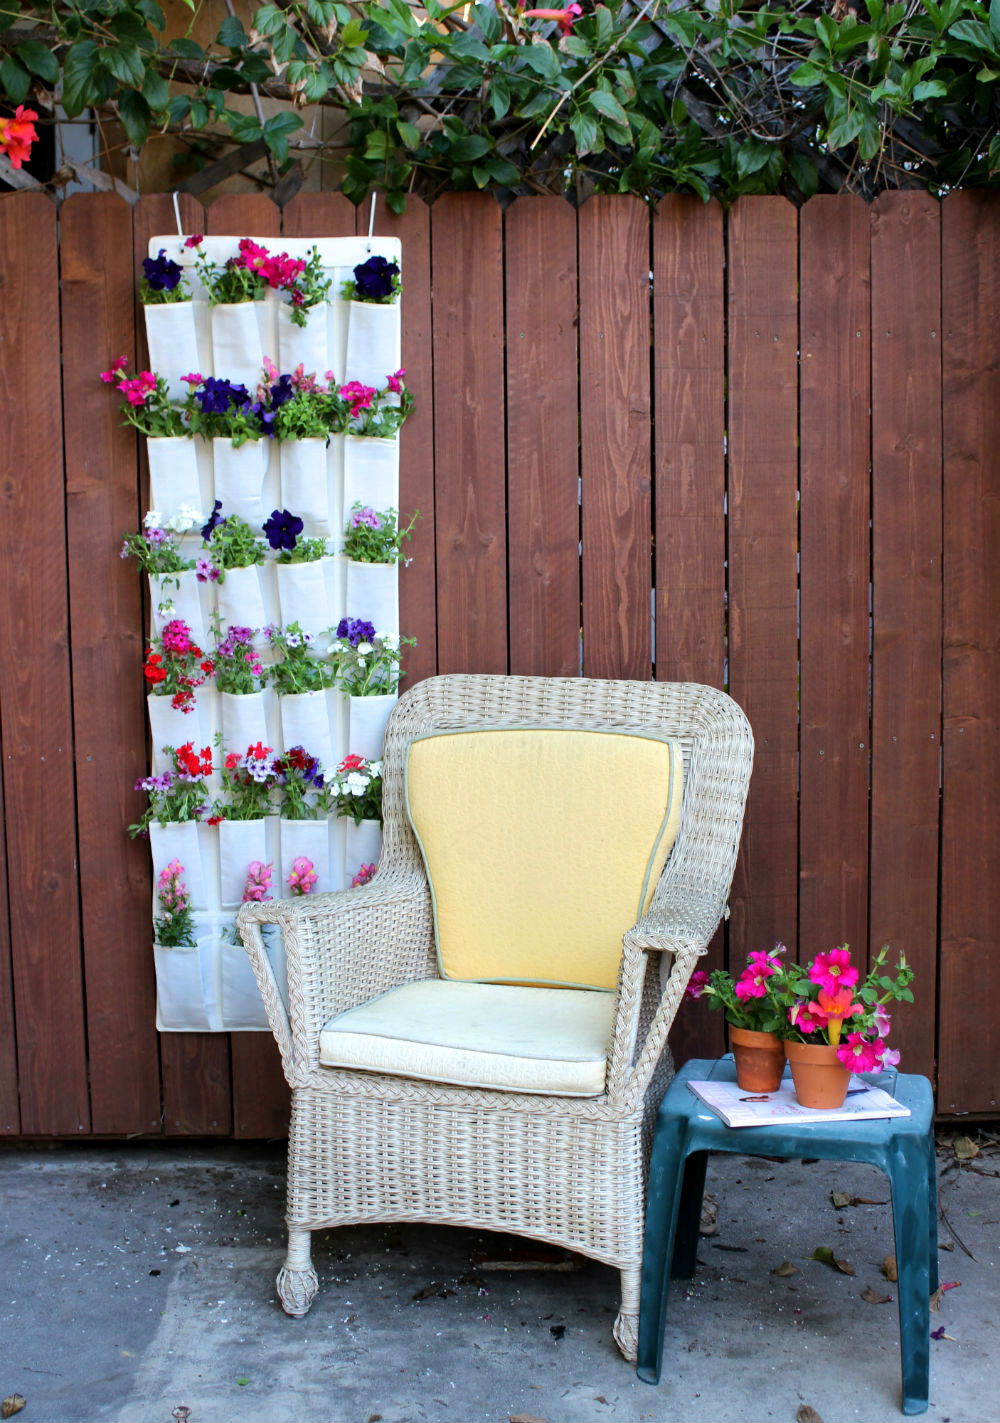 space-saving-garden-hacks-for-small-spaces-that-are-charming-and-inventive-02